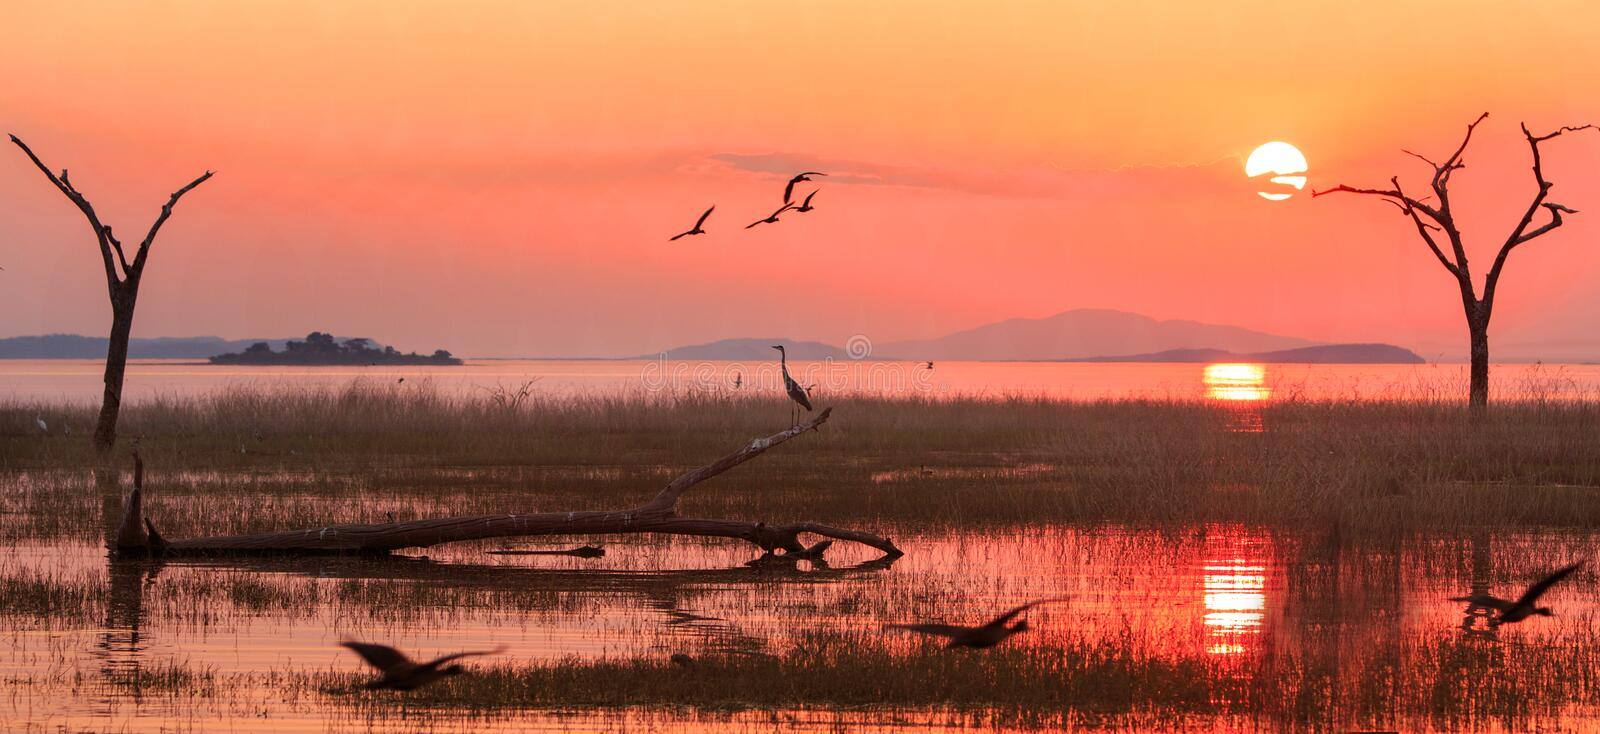 Landscape of Lake Kariba with a bright orange sunset sky with egyptian geese and a silhouette of a heron, Zimbabwe. Panorama of a sunset over Lake Kariba with a royalty free stock photography